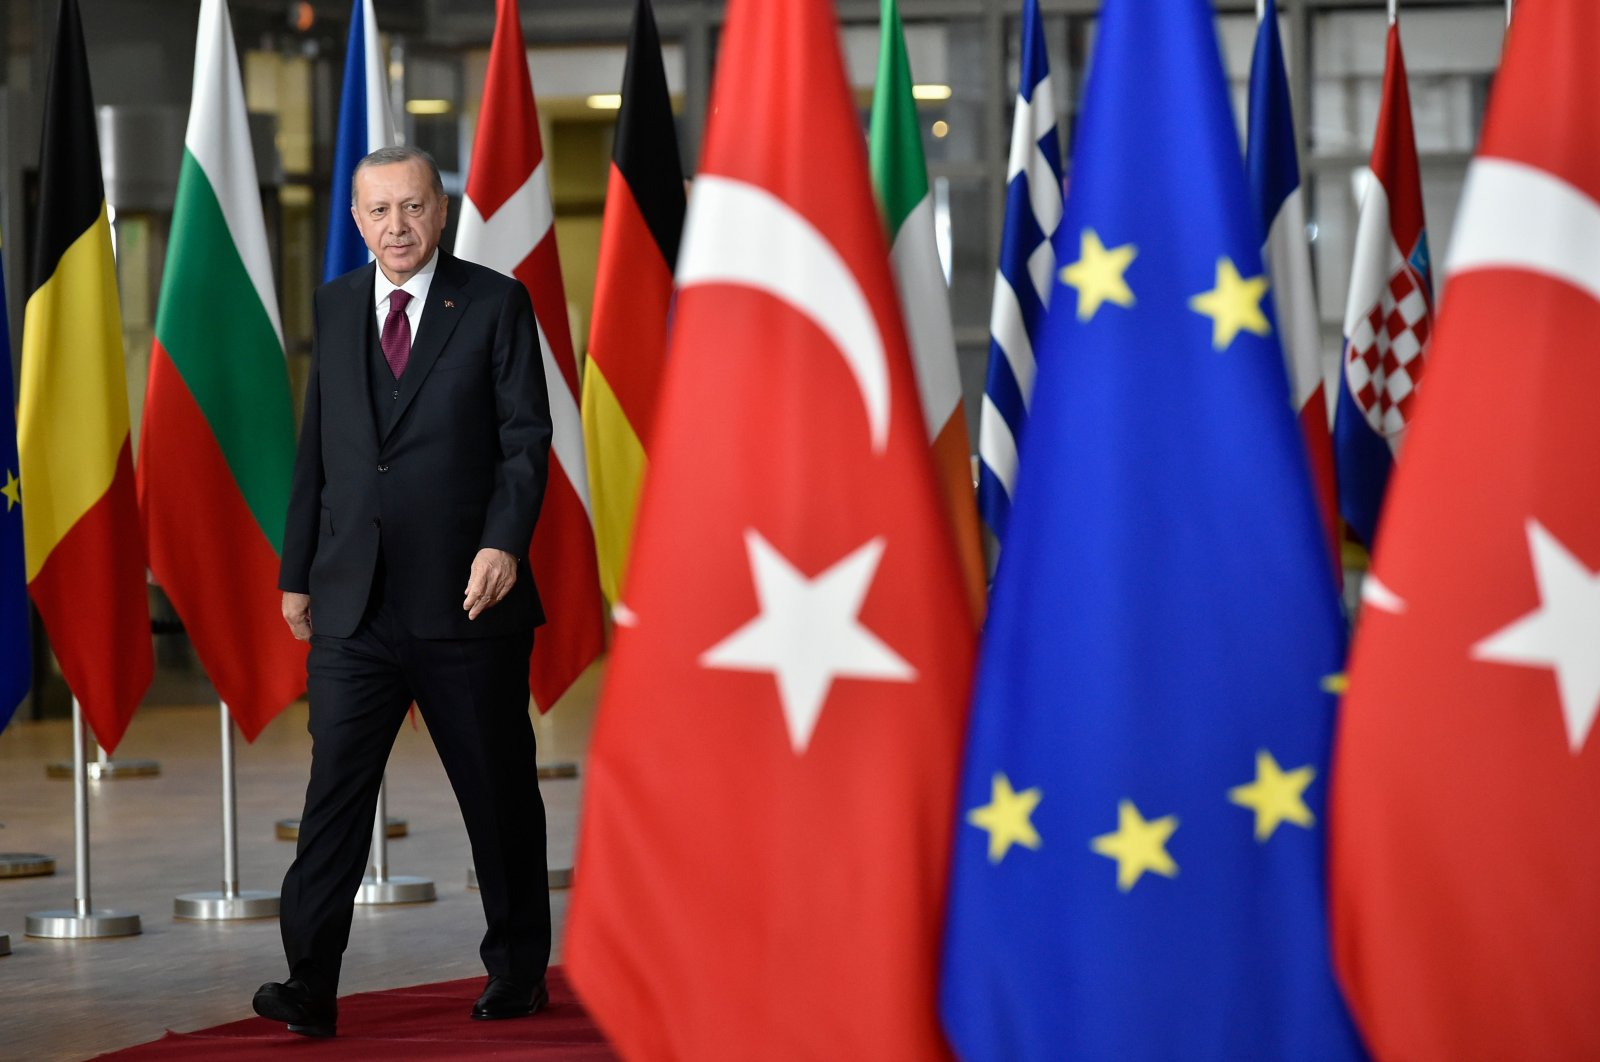 President Recep Tayyip Erdoğan arrives before a meeting with European Commission President and EU Council President at the EU headquarters in Brussels, March 9, 2020. (AFP Photo)